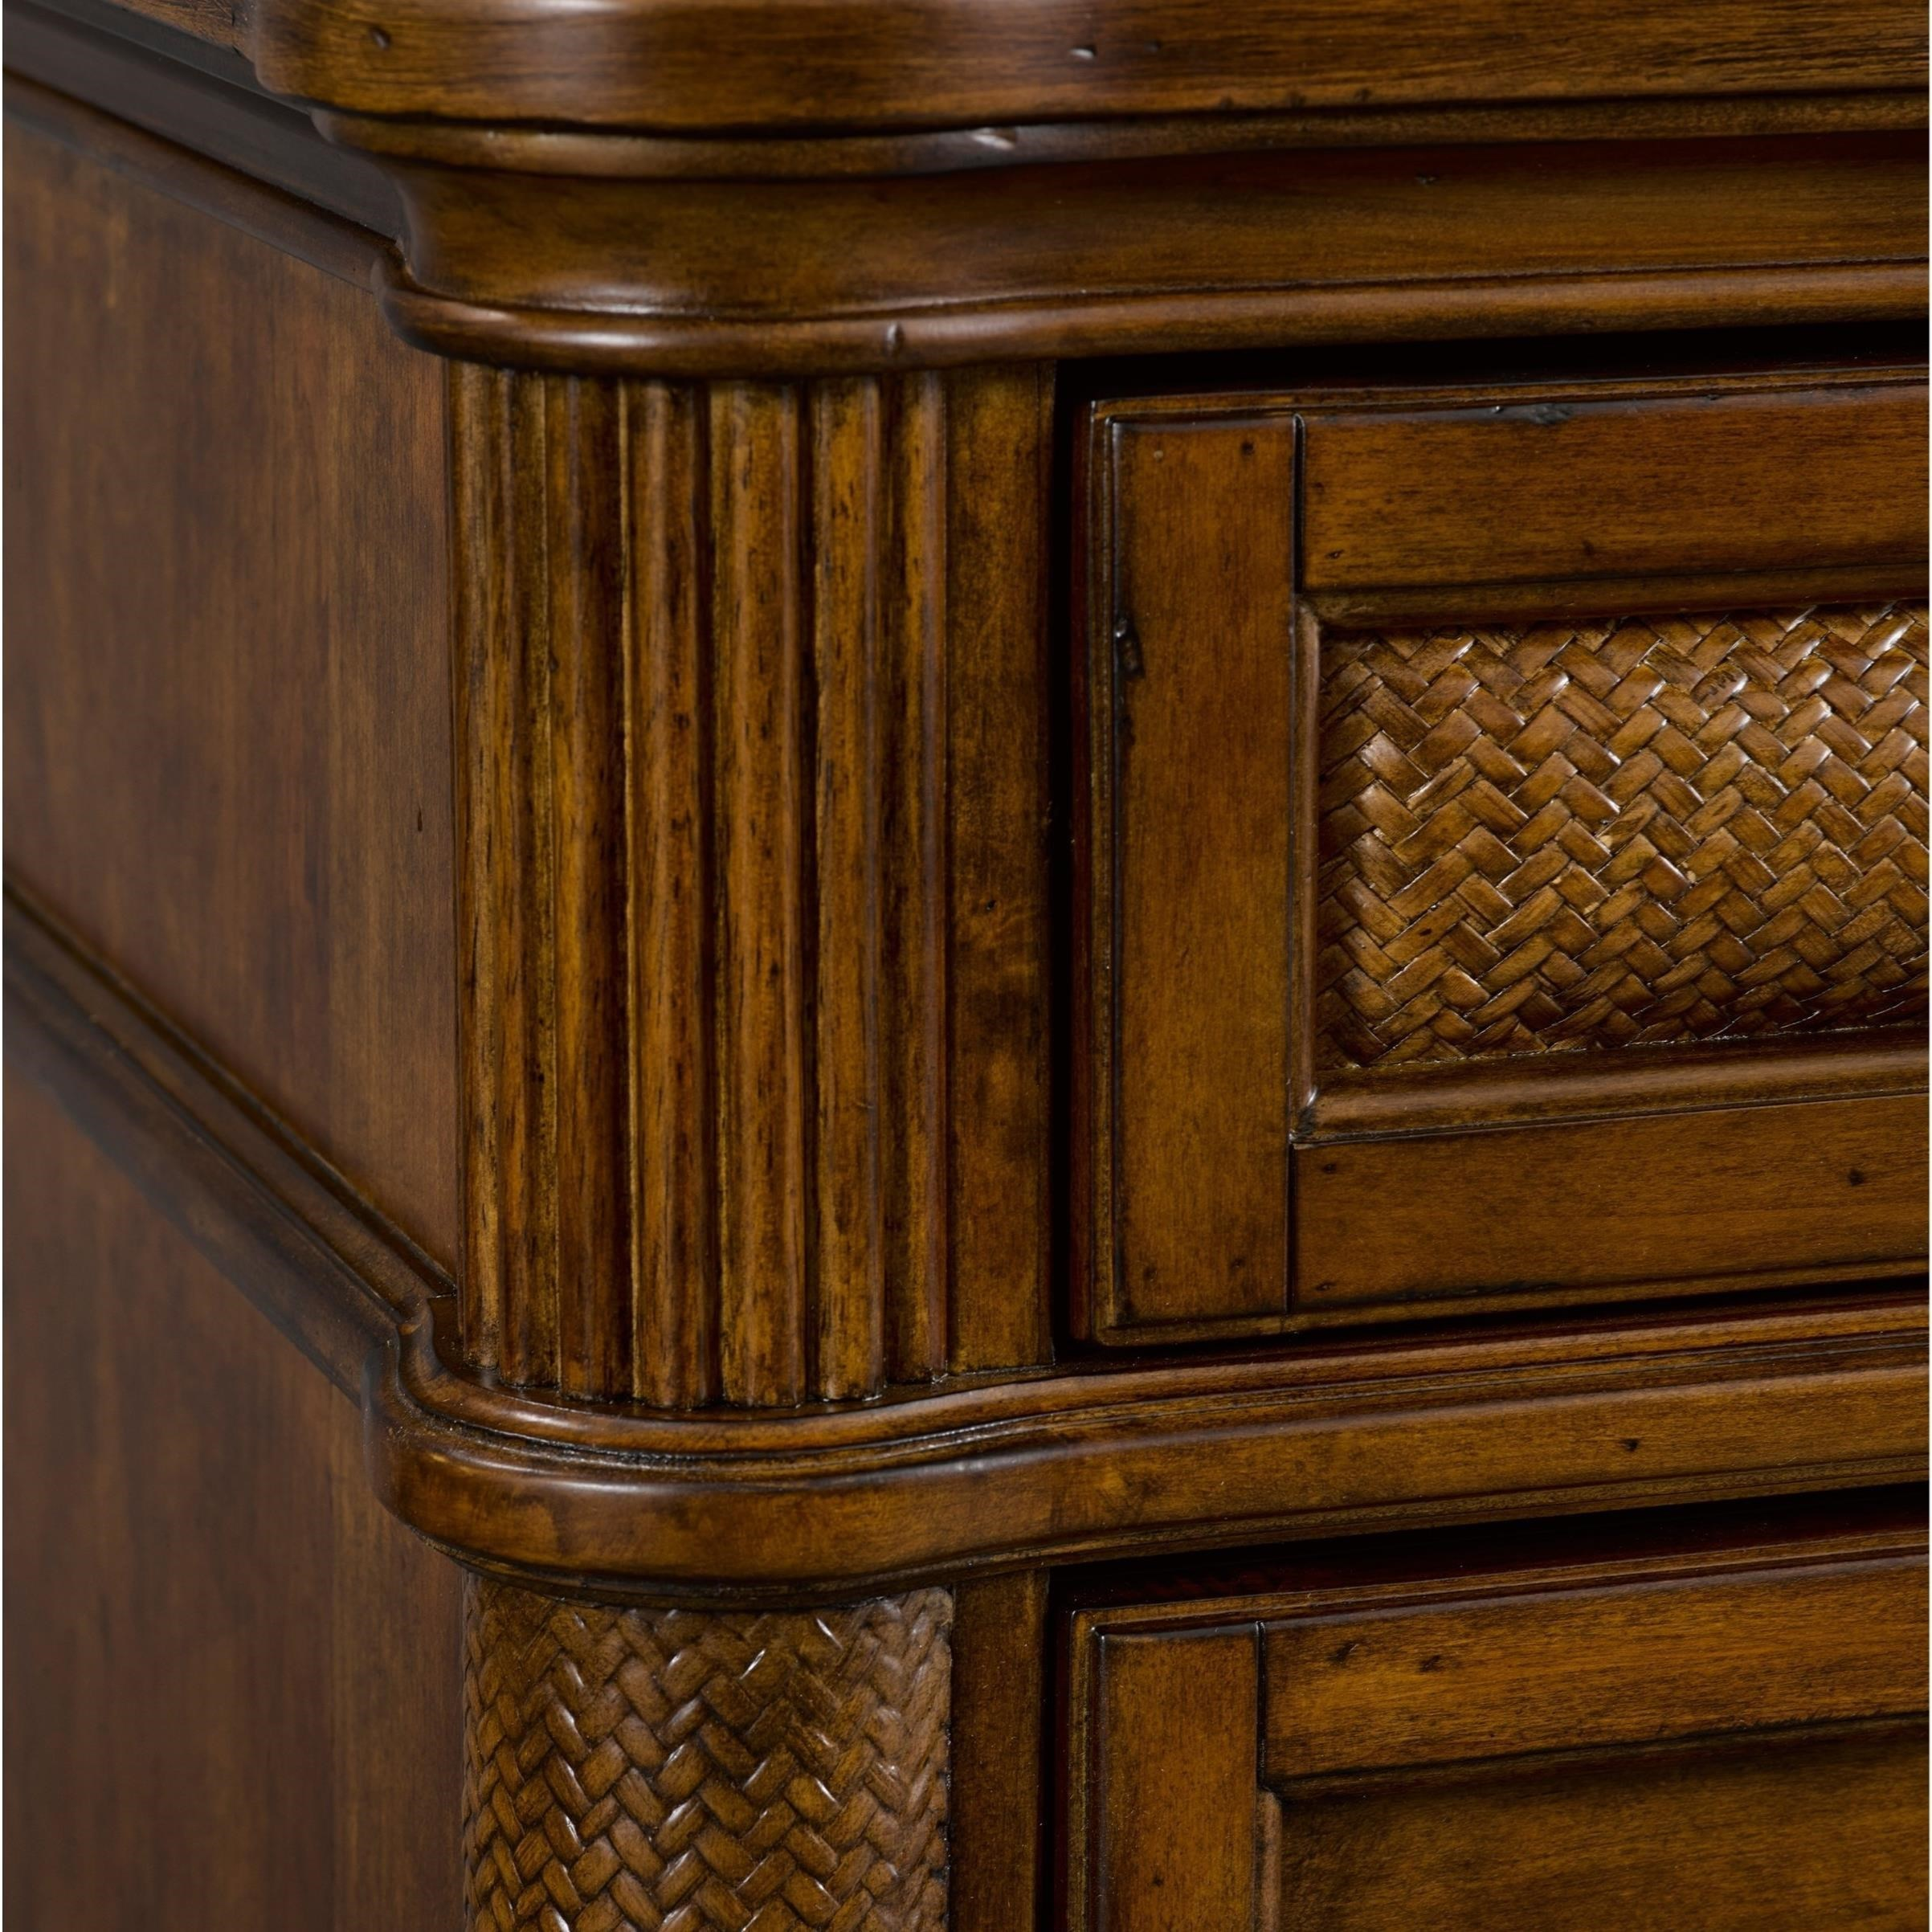 Broyhill Furniture Amalie Bay 4548 292 3 Drawer Nightstand With Padded Raffia Accents Hudson 39 S